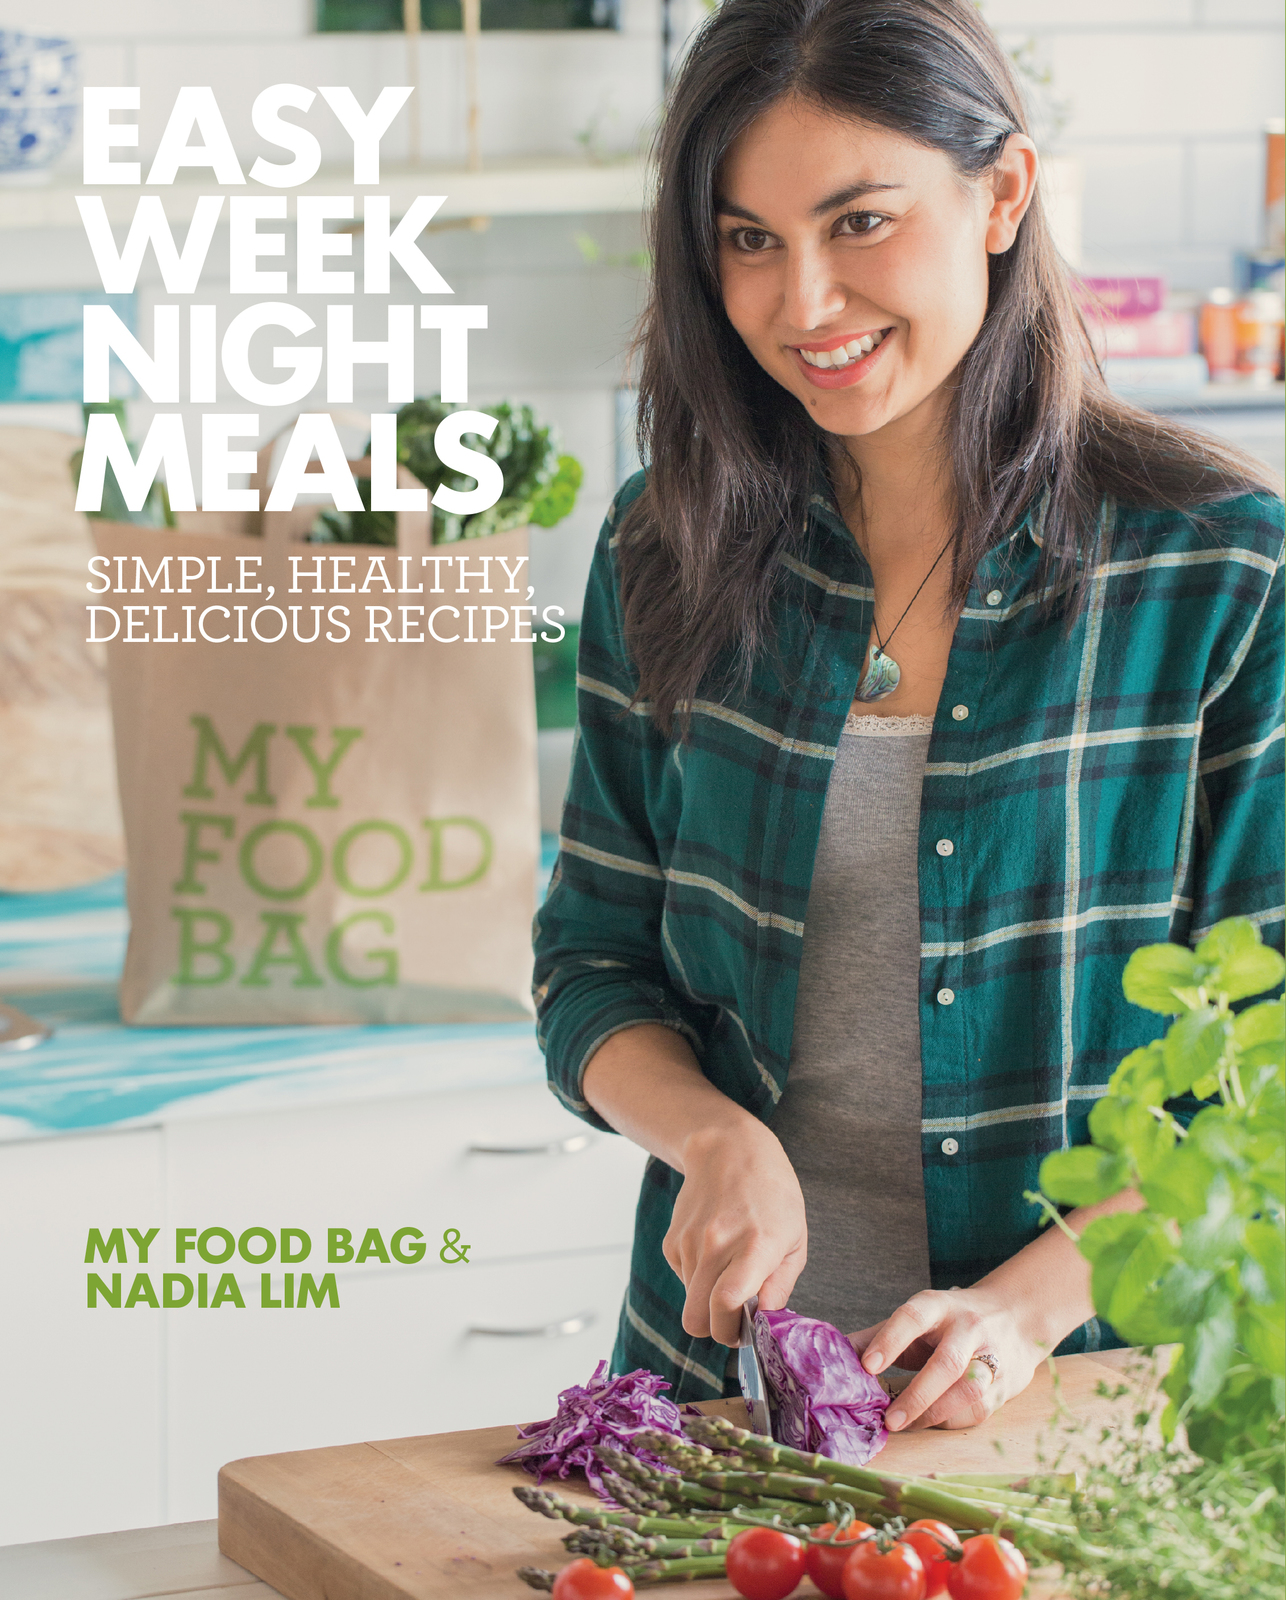 Easy Weeknight Meals by Nadia Lim image